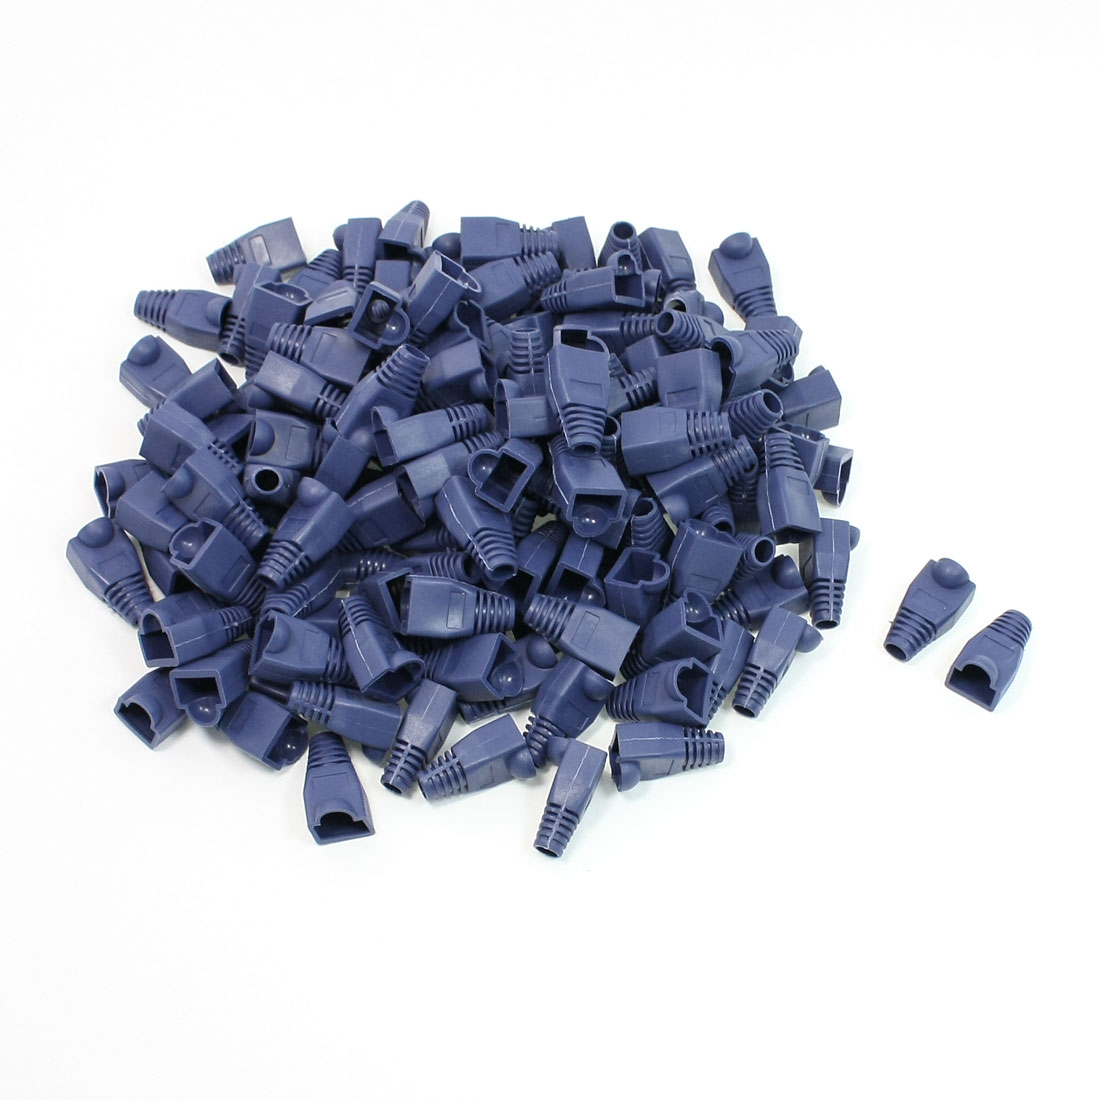 150 Pcs Blue Plastic Boots Cover Cap for RJ45 Connectors